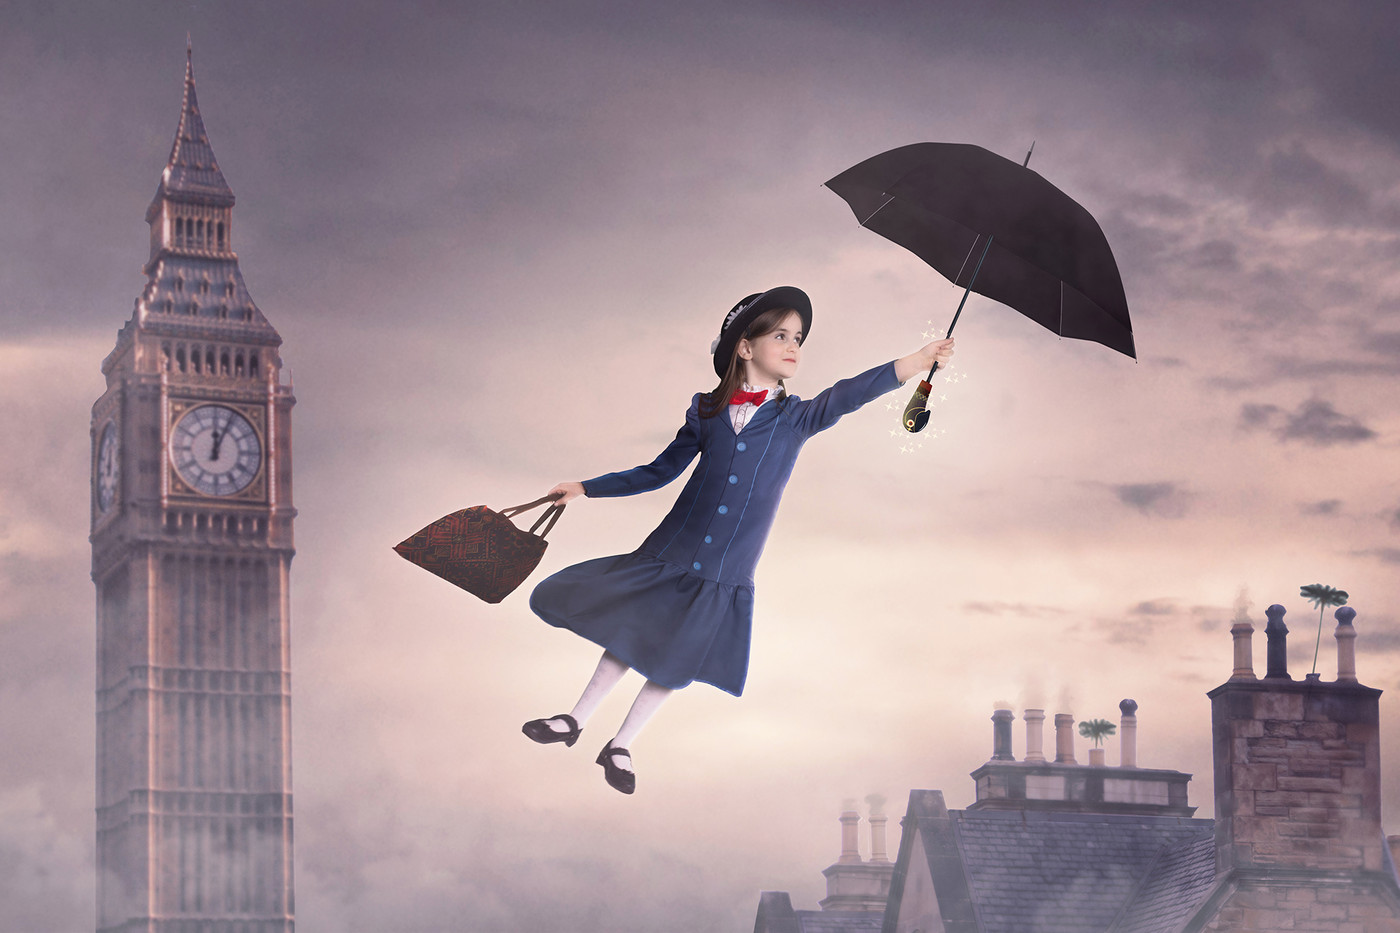 Poppins flying time